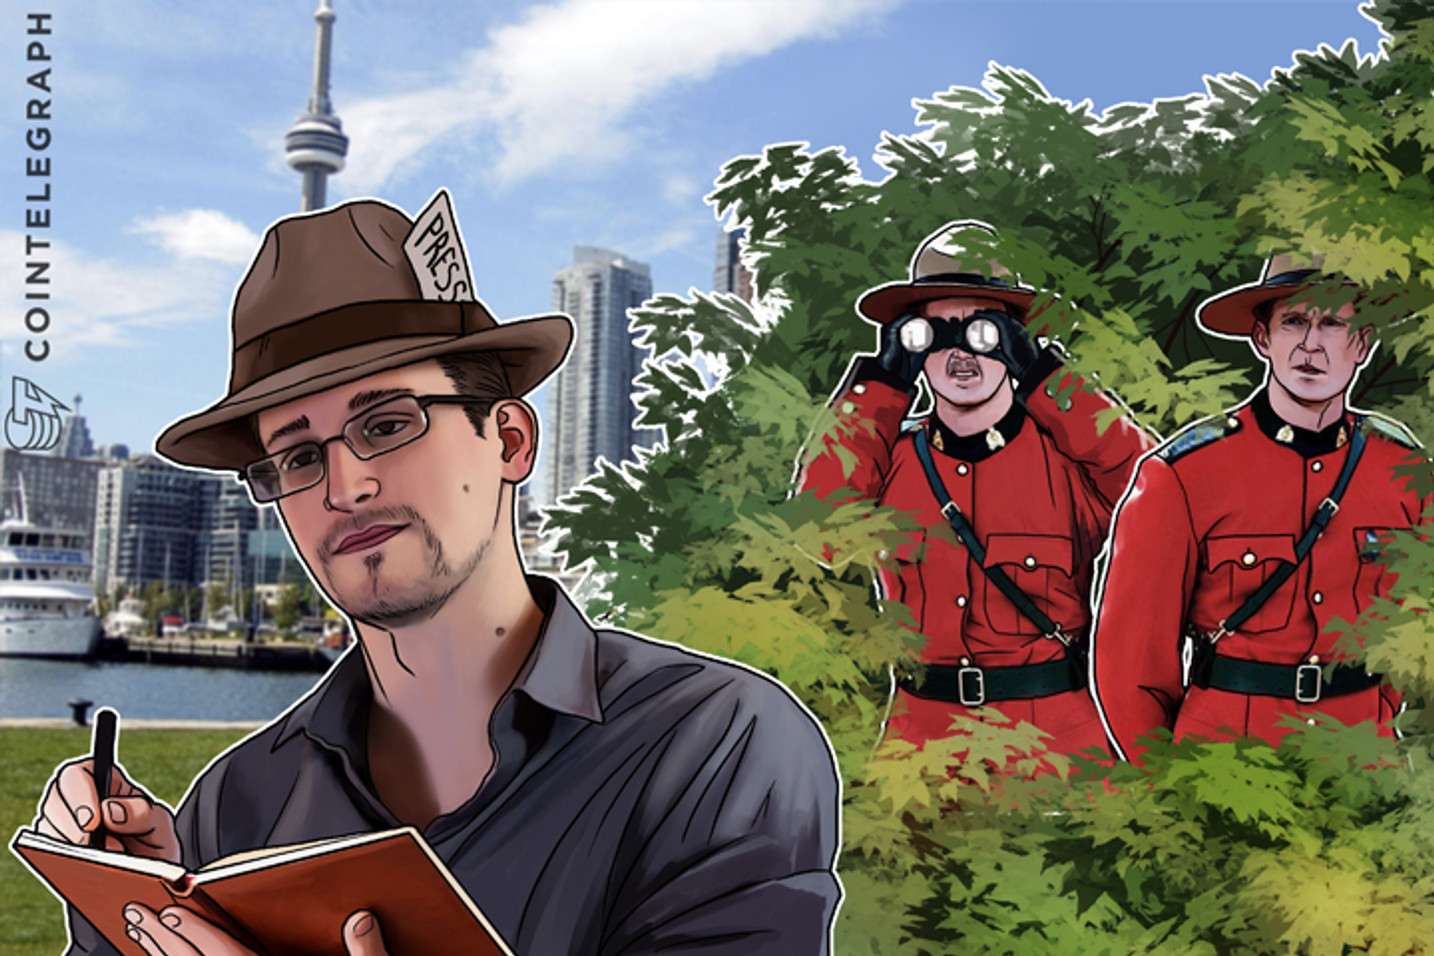 """Snowden: Canada Police Spying on Journalists """"Unsettling"""""""